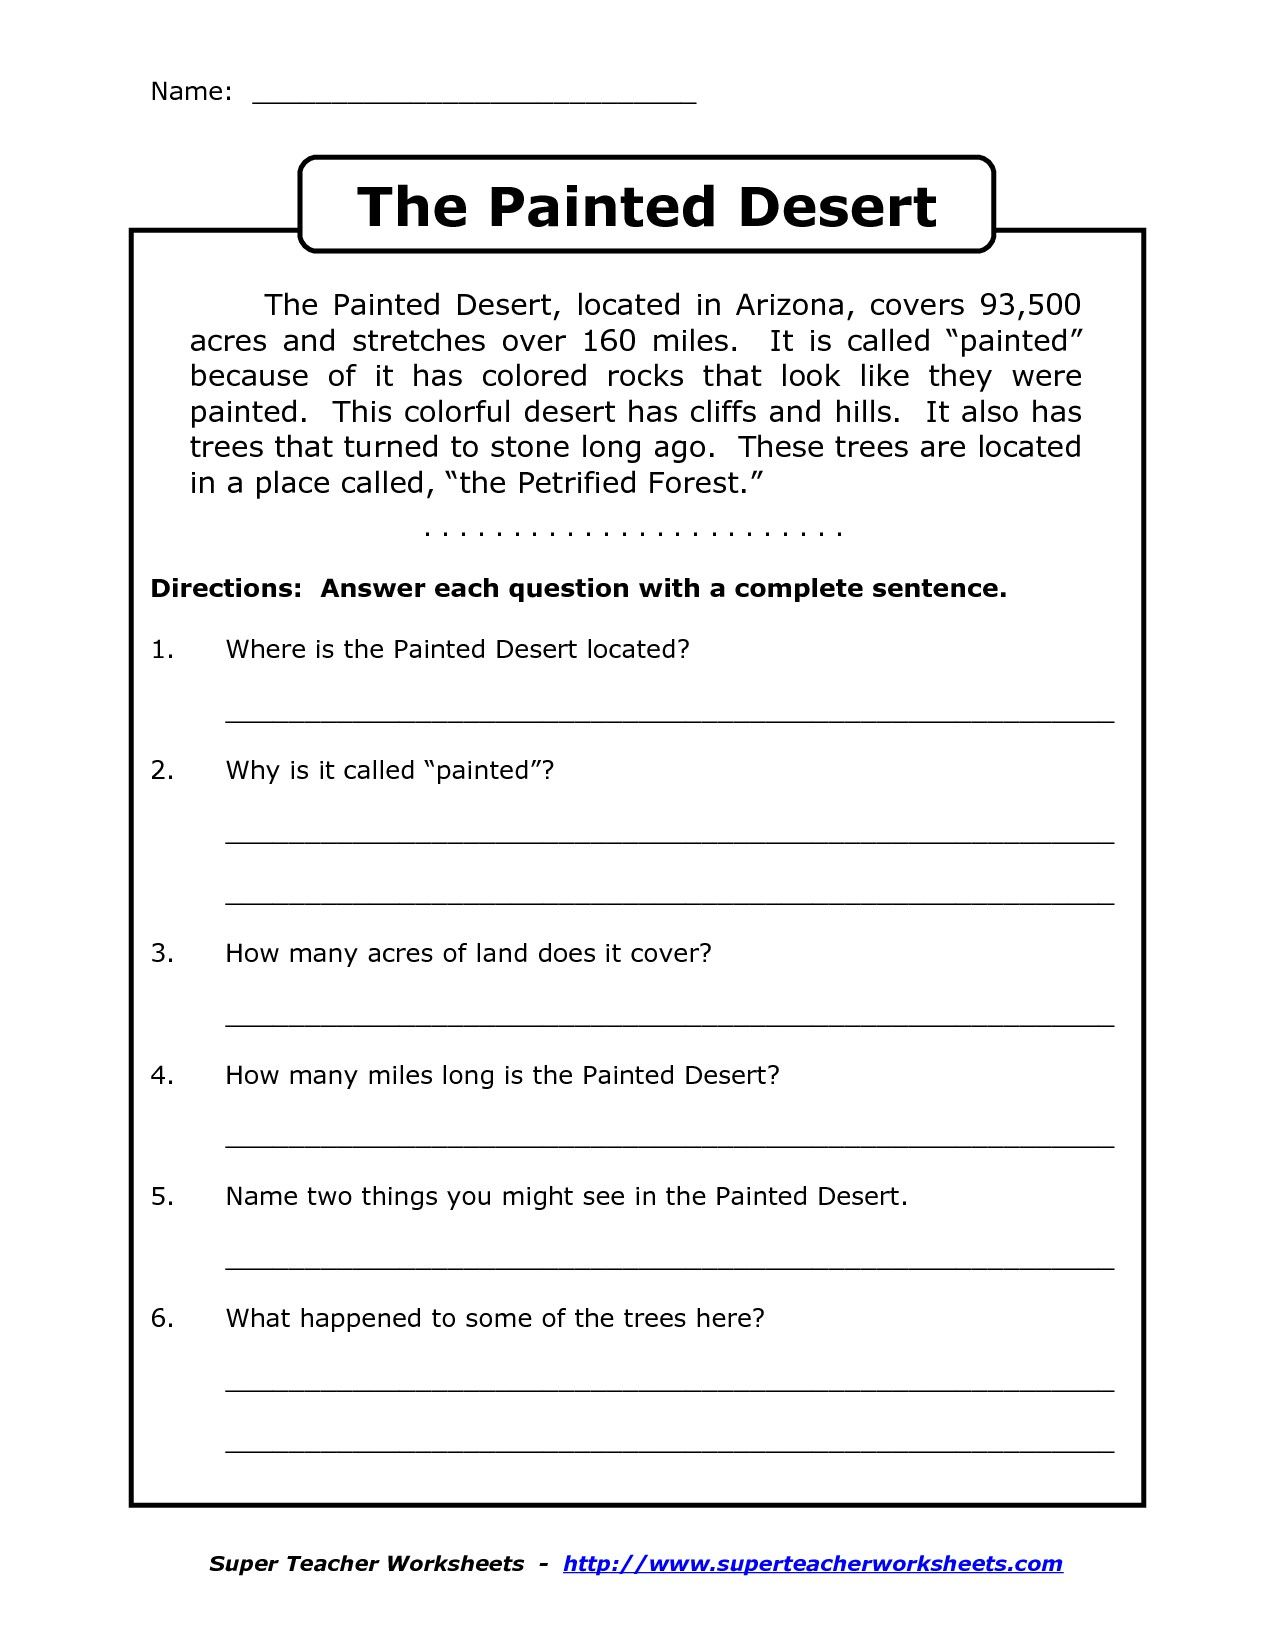 Worksheet 2nd Grade Comprehension Worksheets grade 2 reading comprehension worksheets free coffemix worksheet coffemix